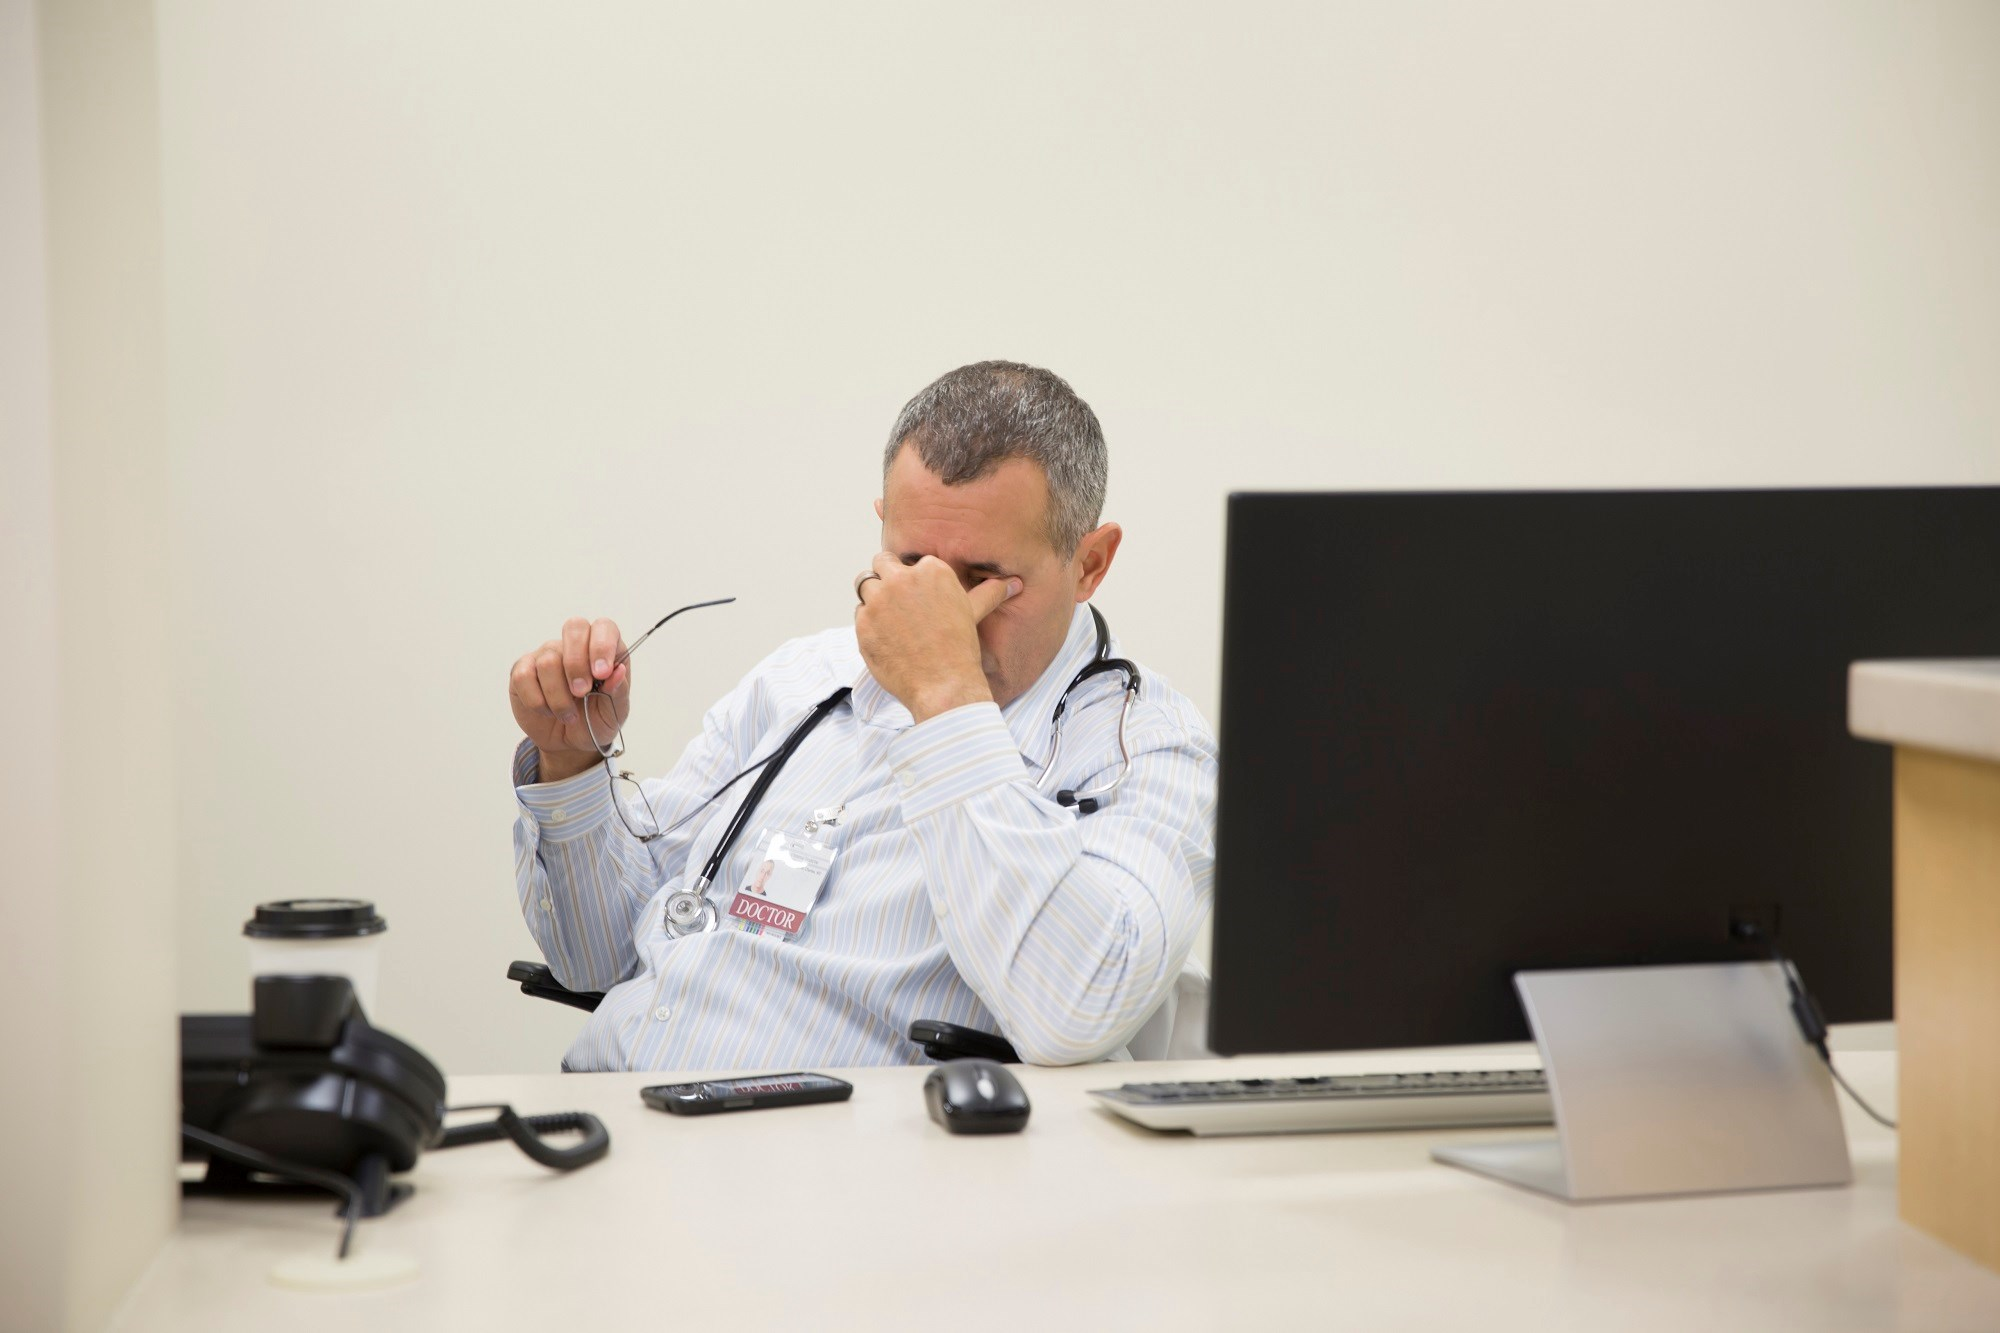 Stress related to use of health information technology is common and predictive of burnout among physicians.